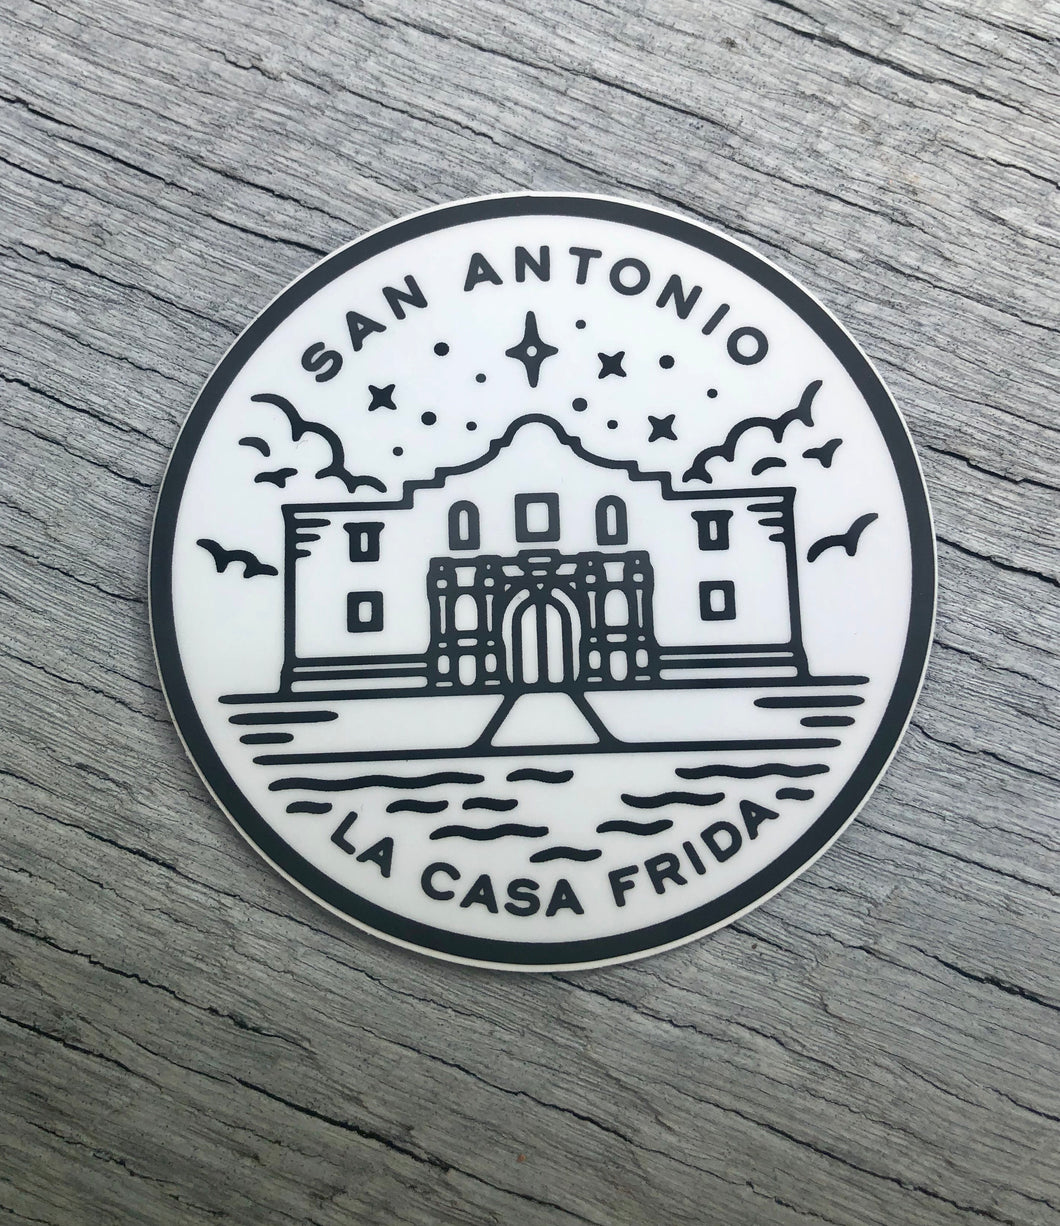 El Alamo sticker